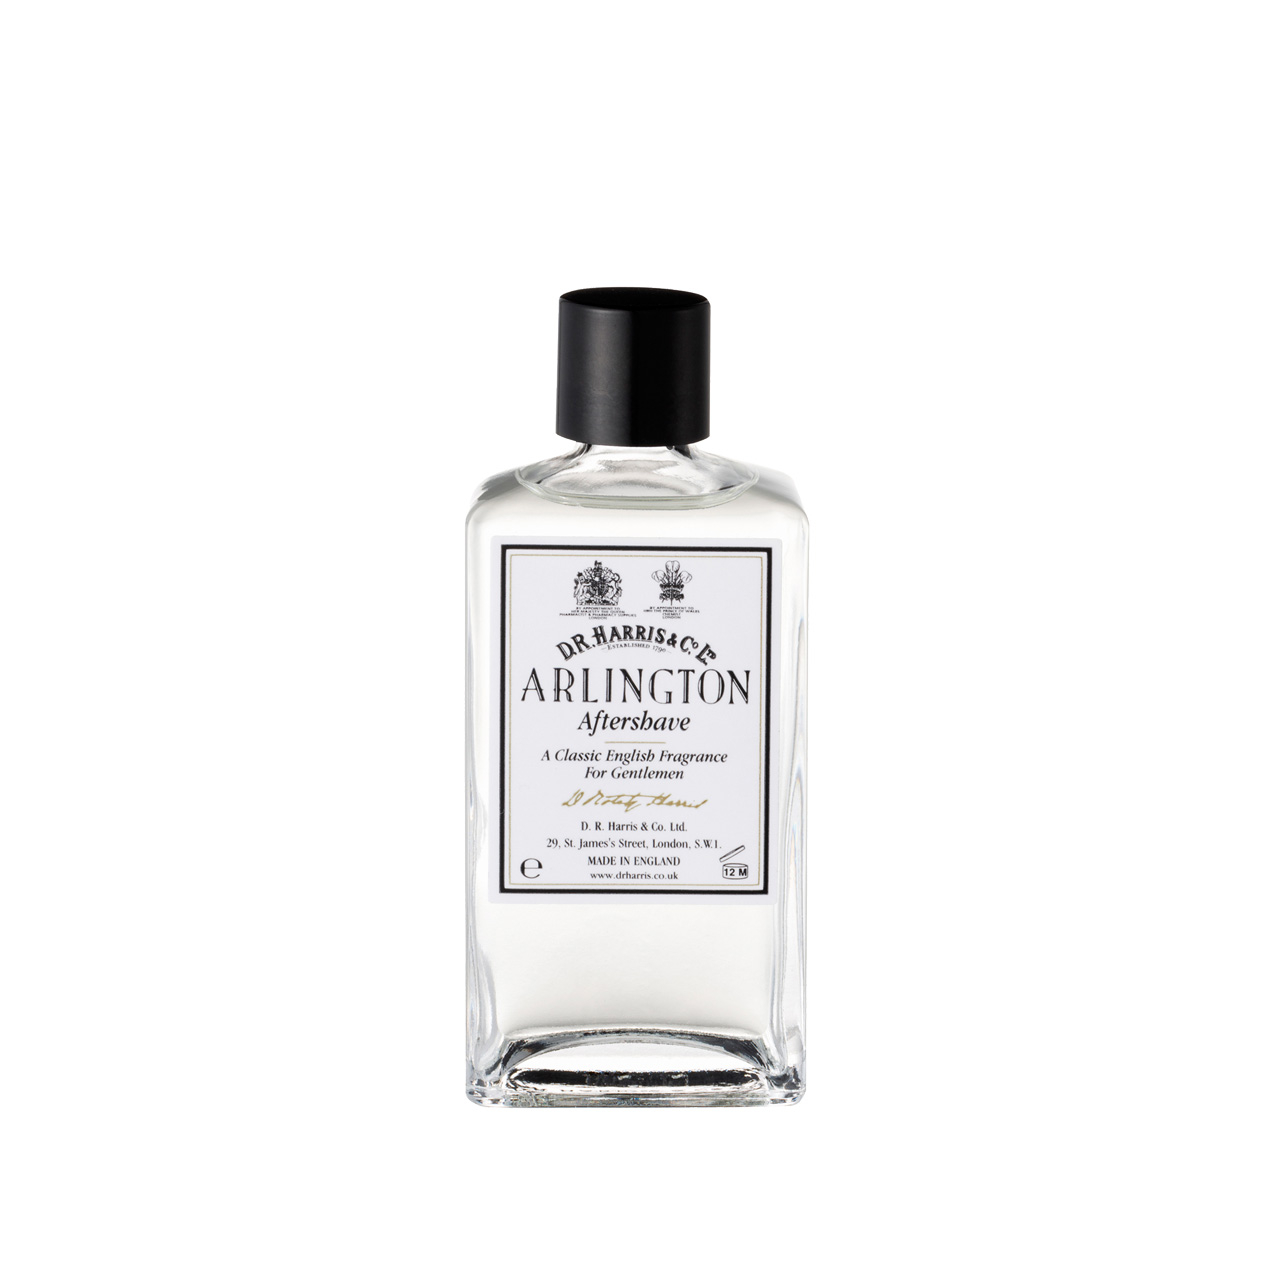 Arlington - After Shave Lotion